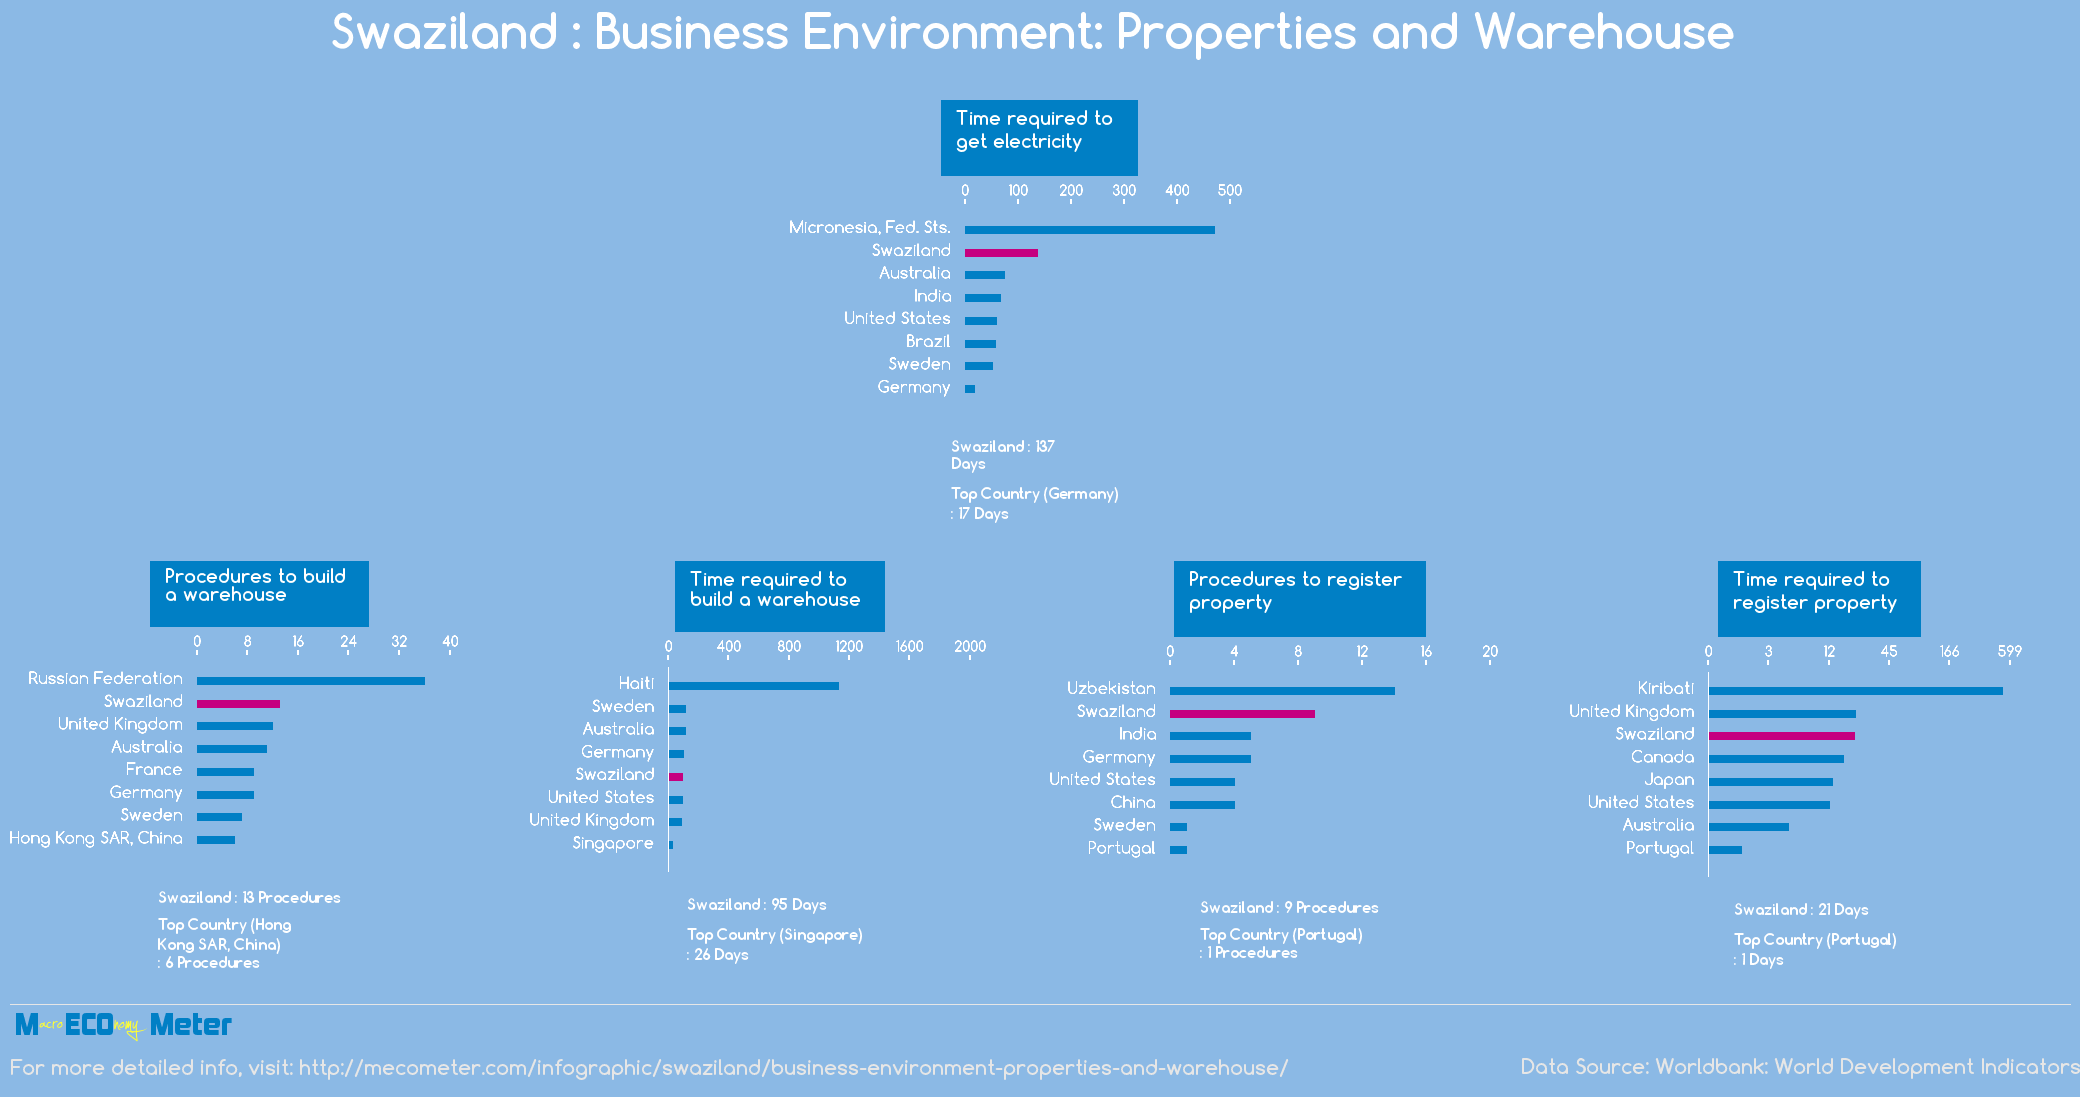 Swaziland : Business Environment: Properties and Warehouse